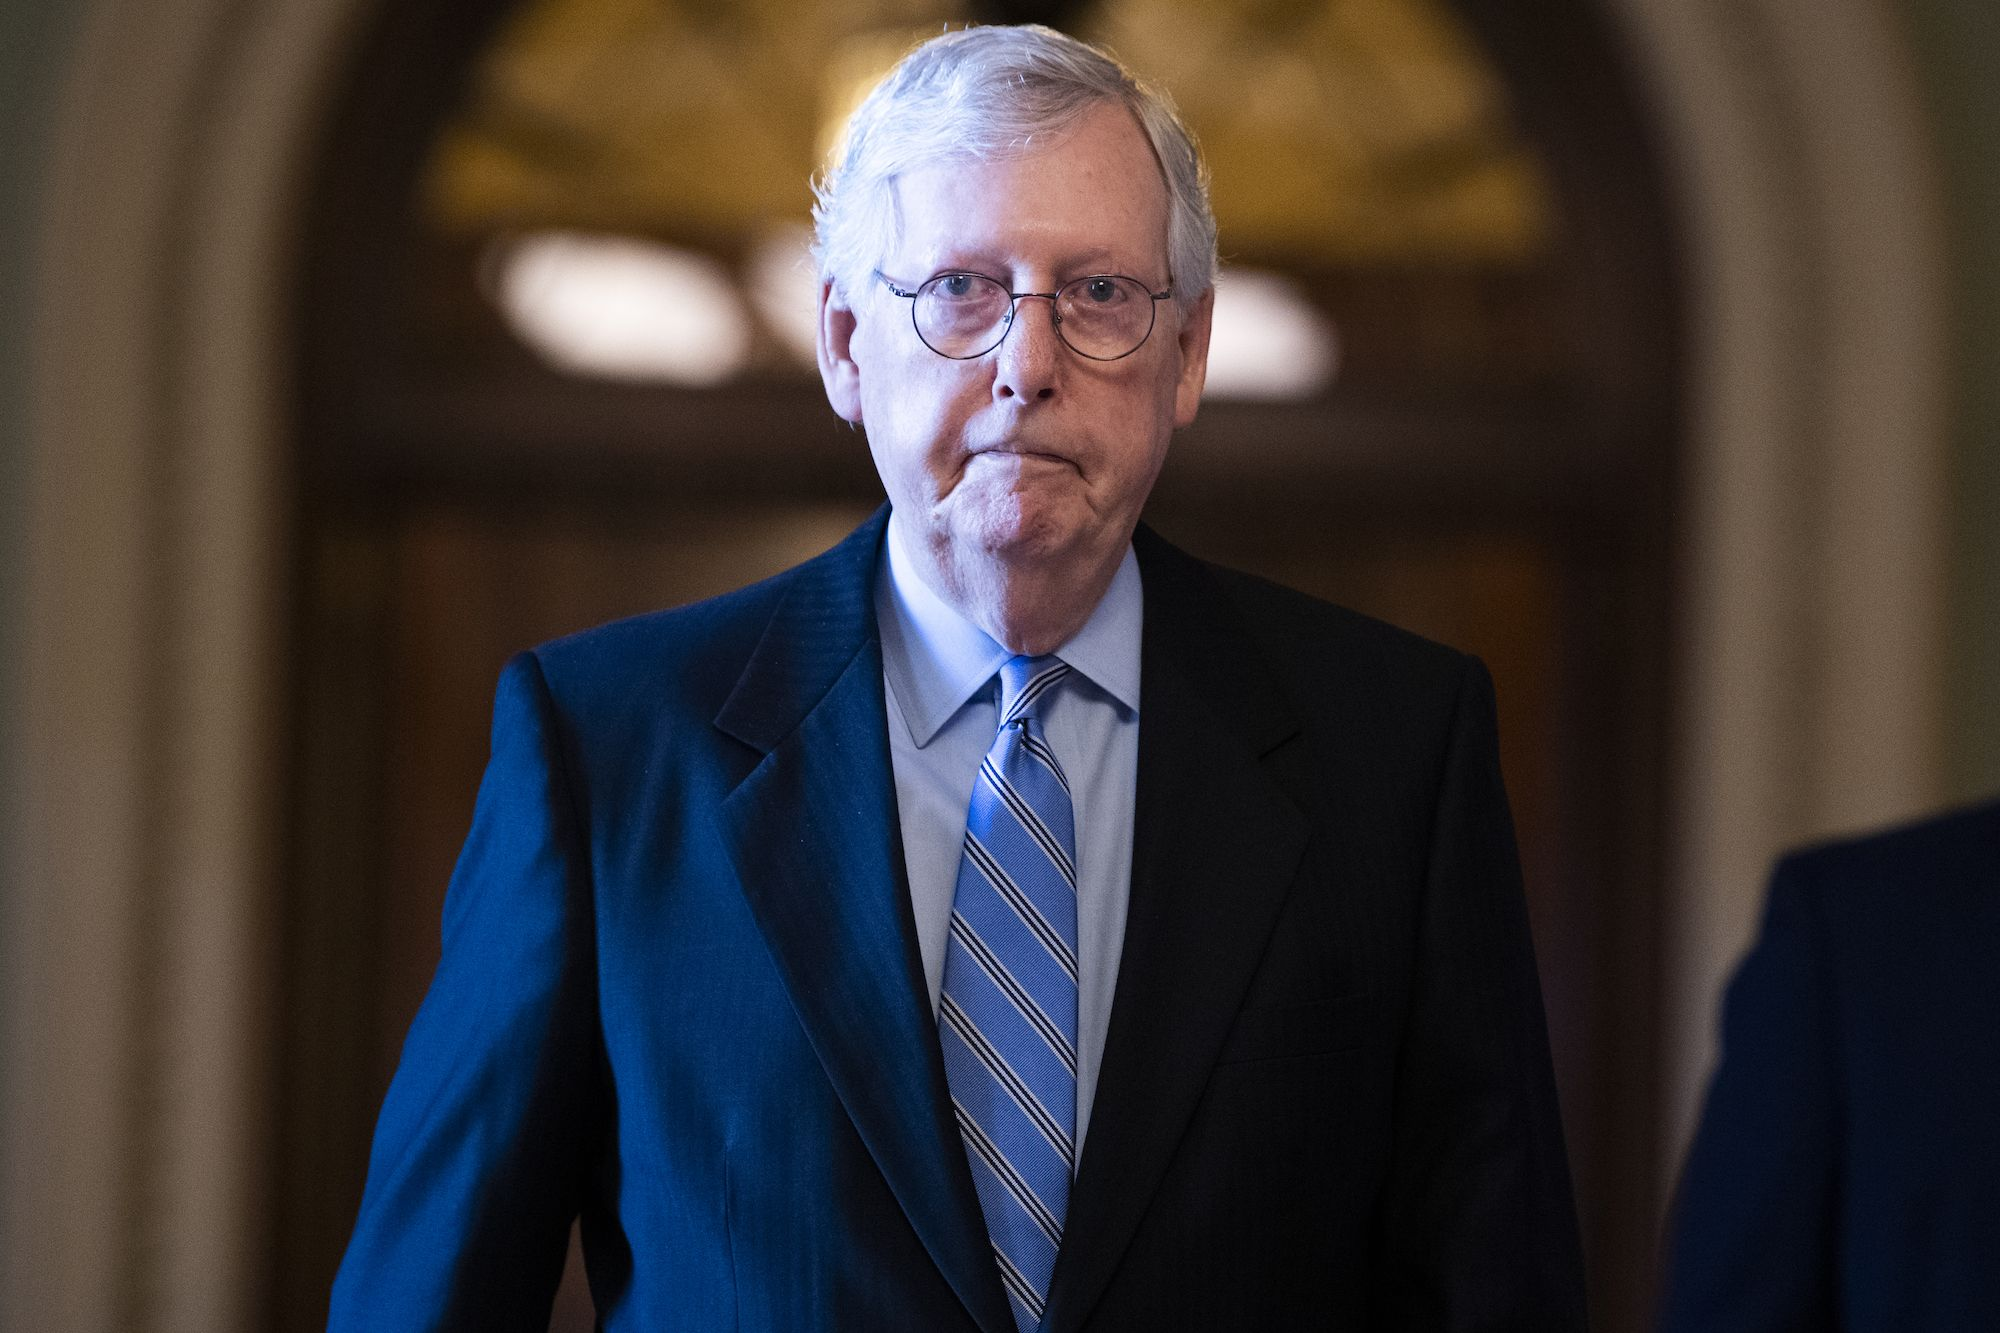 Mitch McConnell Just Fired on Fort Sumter and Shot the Archduke